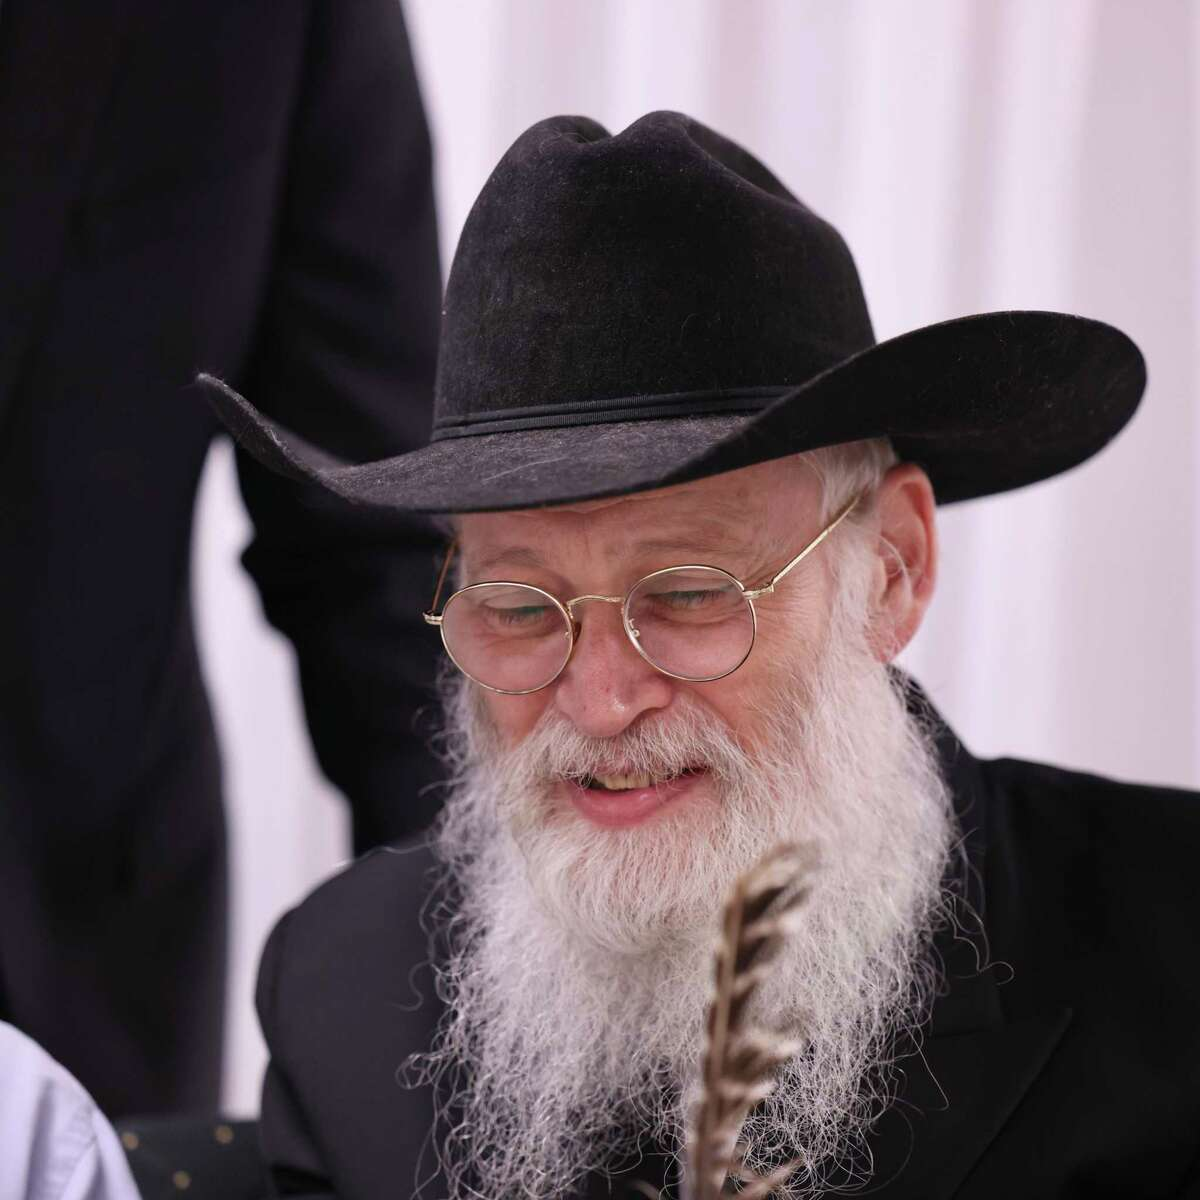 Fifth-generation scribe Rabbi Moshe Klein gets a taste of Texas while visiting from Crown Heights in Brooklyn, N.Y. Klein was at The Shul of Bellaire for the completion and dedication of the Unity Torah.